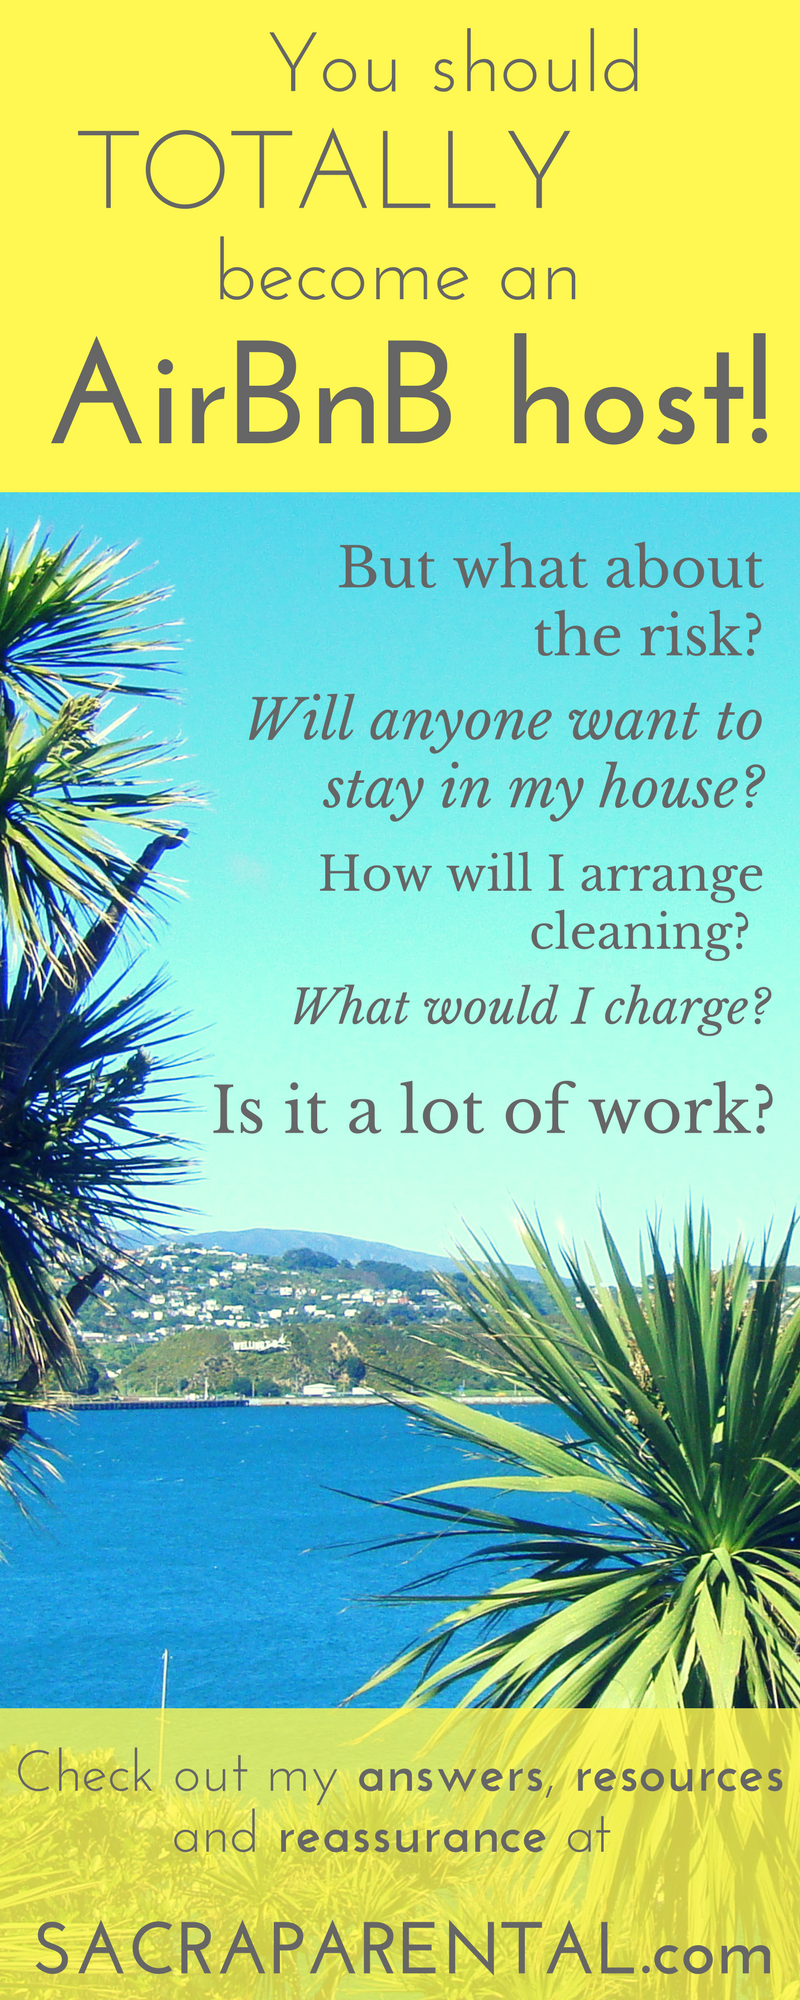 HOW and Why to let your house out with AirBnB whenever you're not at home. But what about the risk? Will anyone want to stay in my home? How will I arrange cleaning? What should I charge? Is it a lot of work? Answers, tips and reassurance at Sacraparental.com!